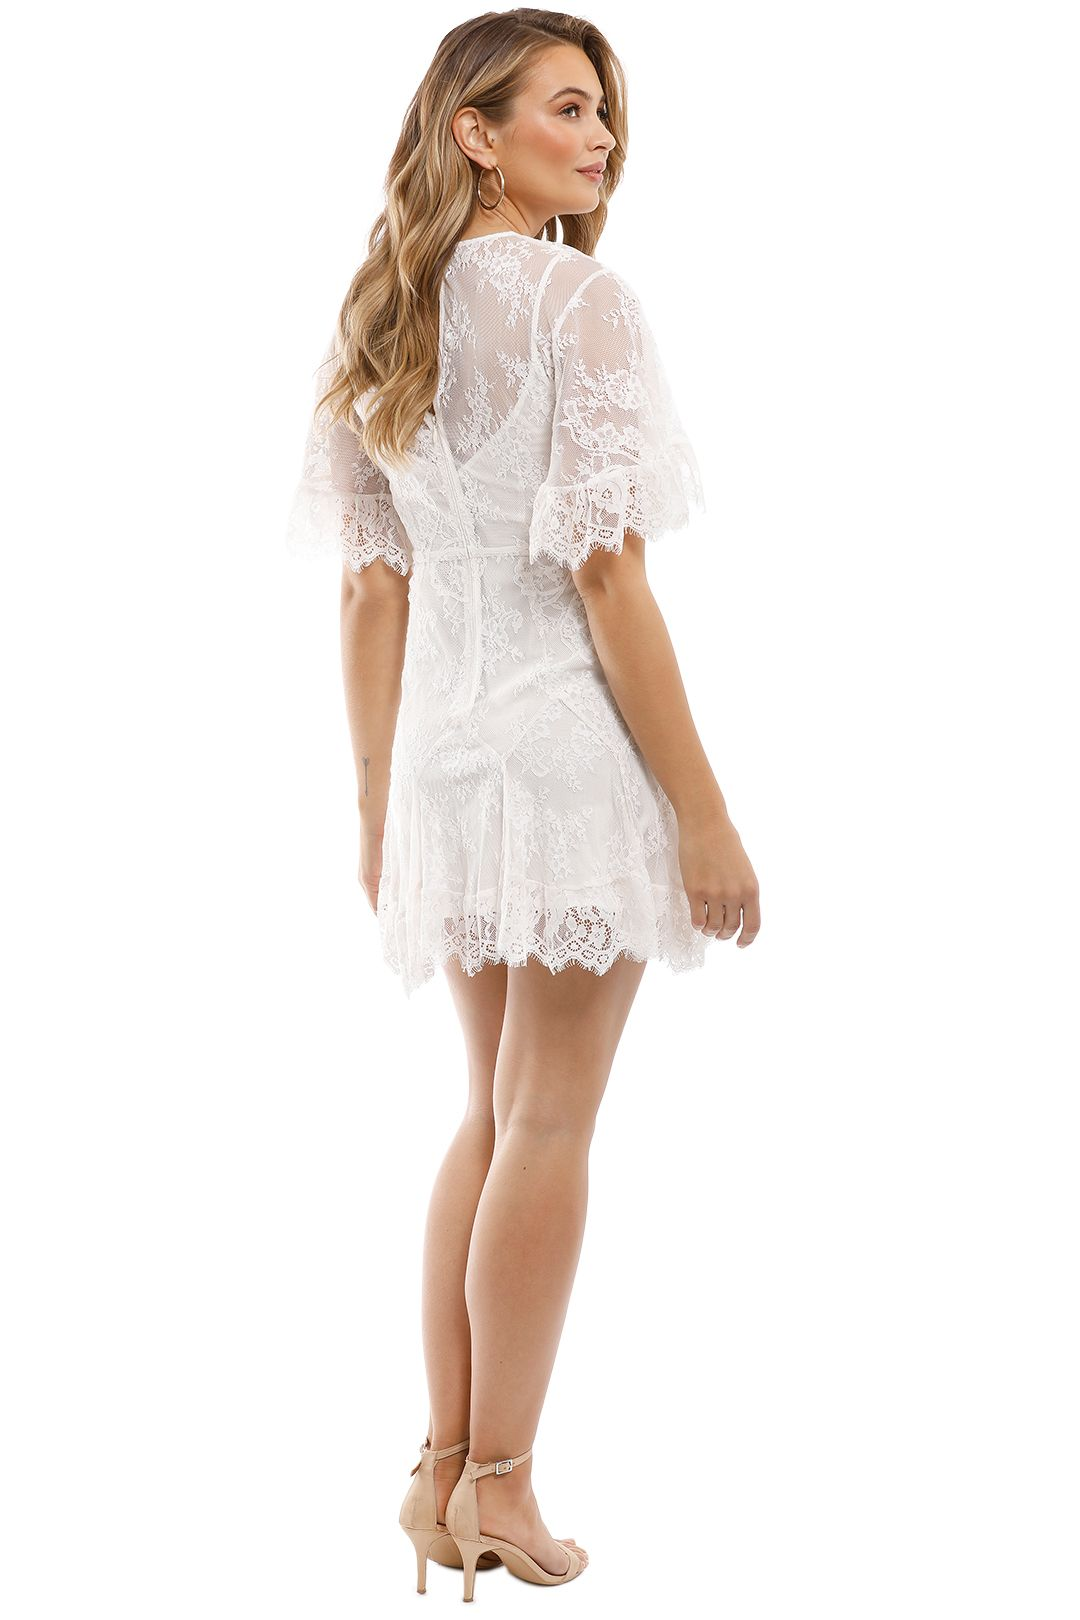 Talulah - Blind Love Mini Dress - White - Back